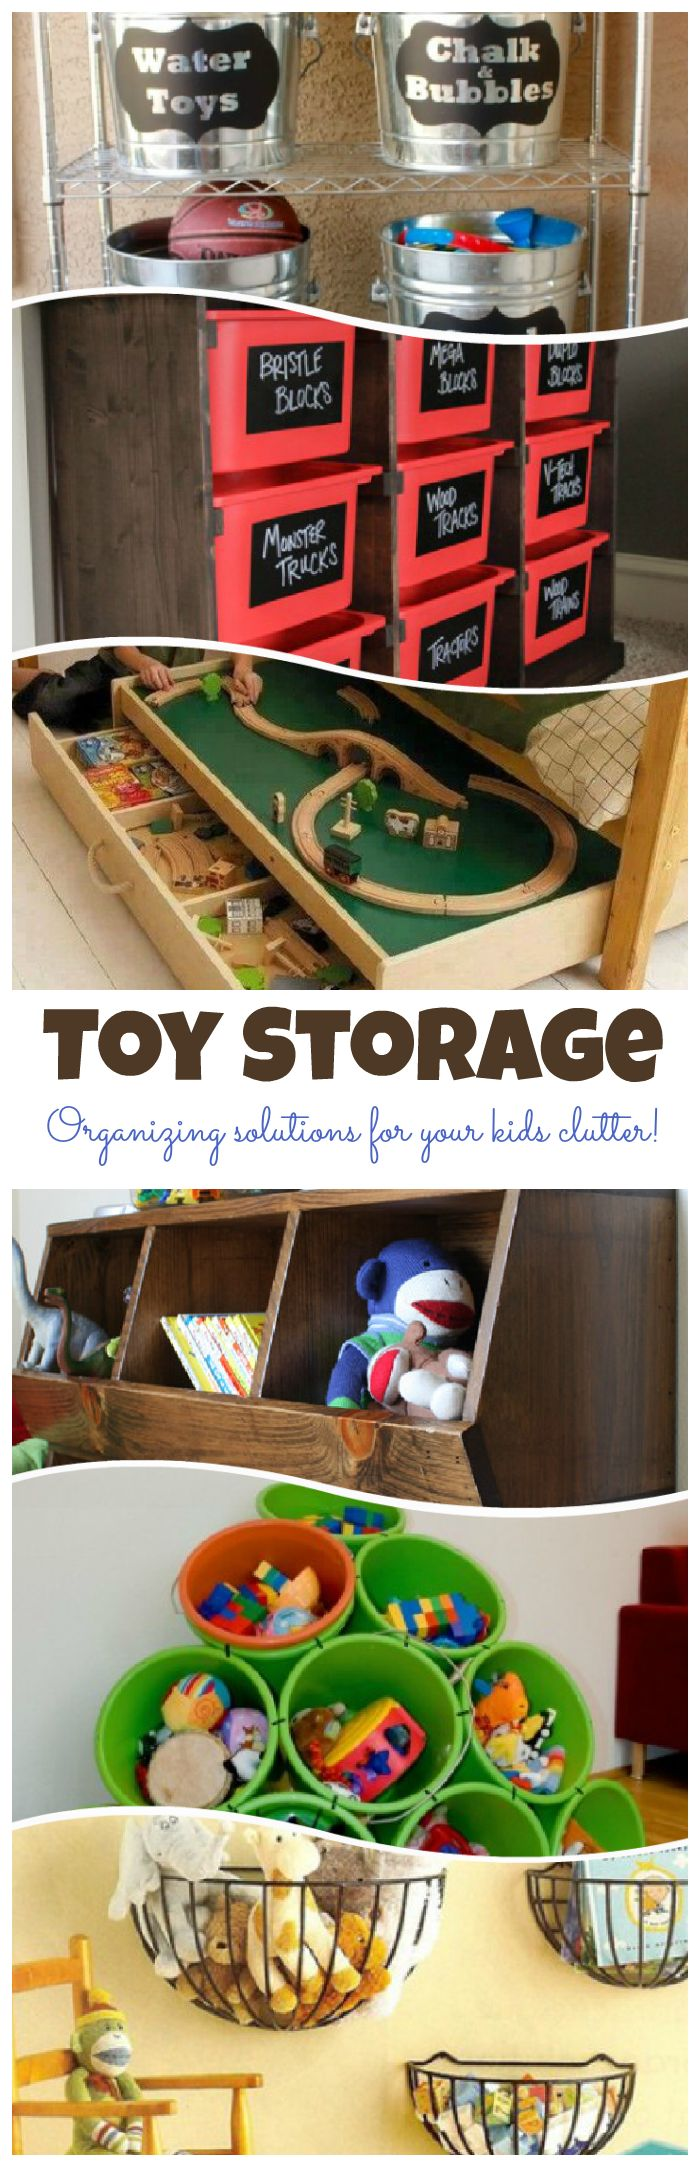 Toy Storage: Organizing your kids clutter! - This Girl's Life Blog